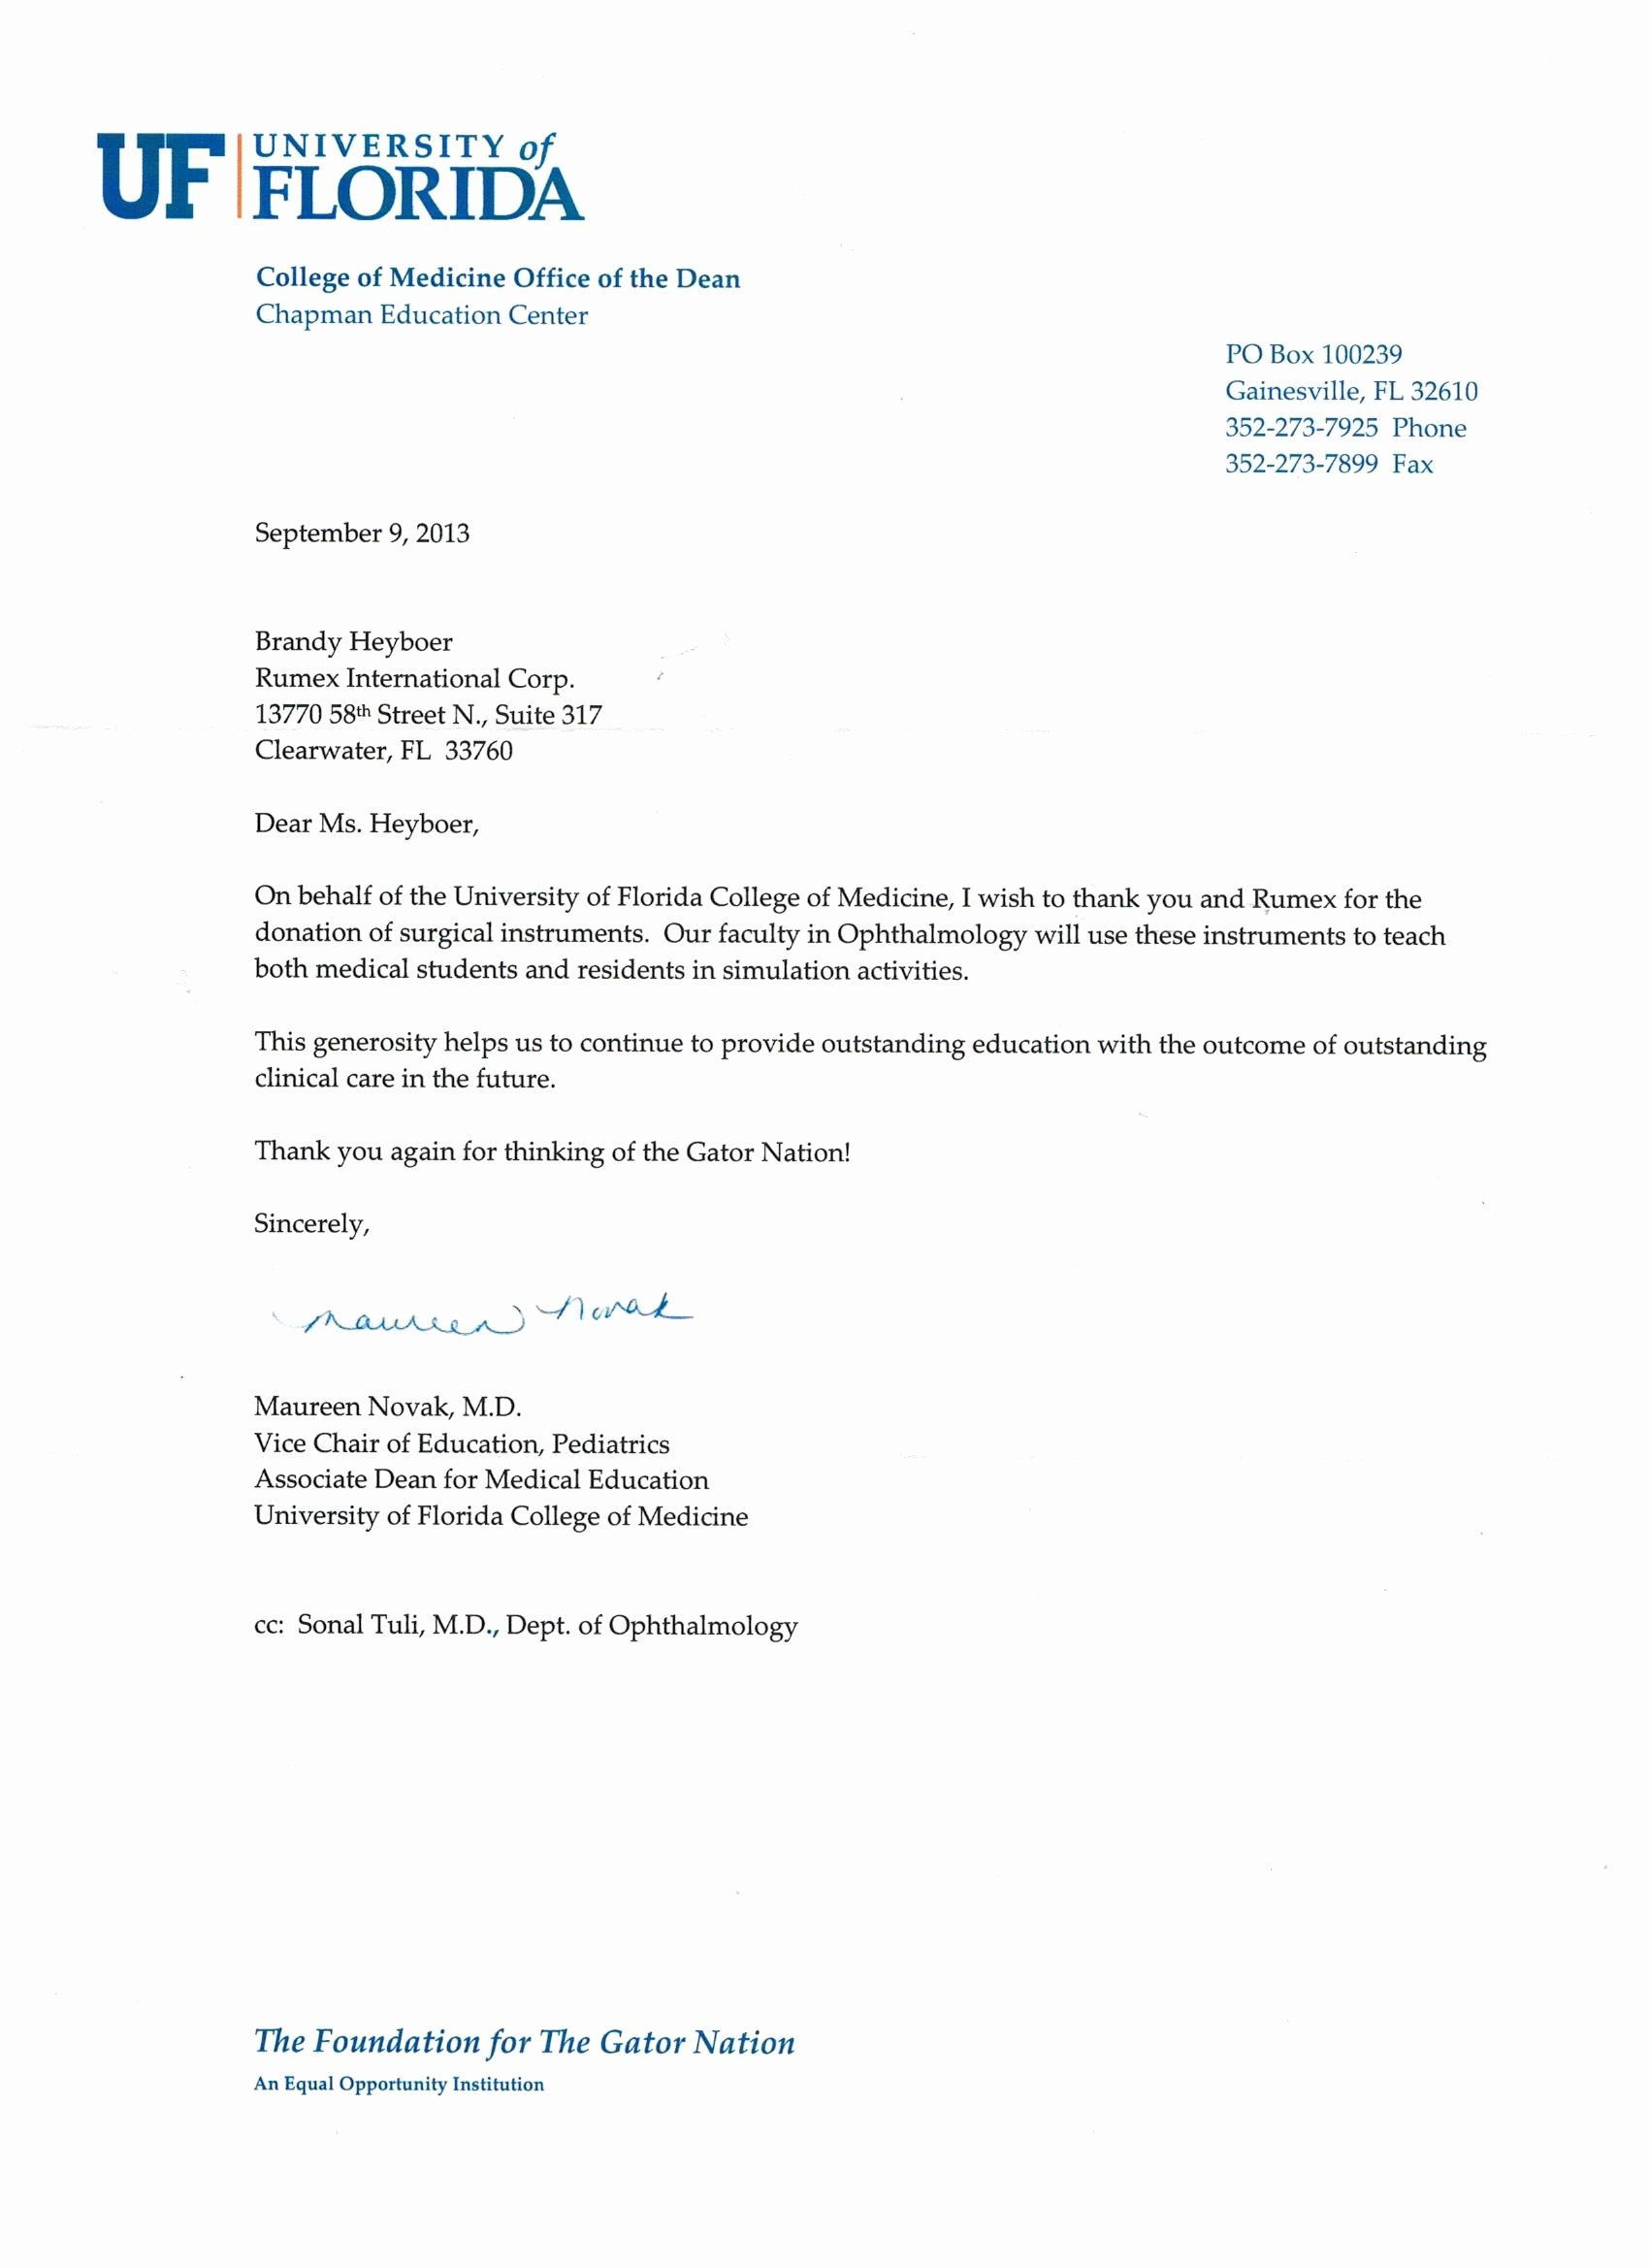 Donation Thank You Letter Templates New Rumex Donations